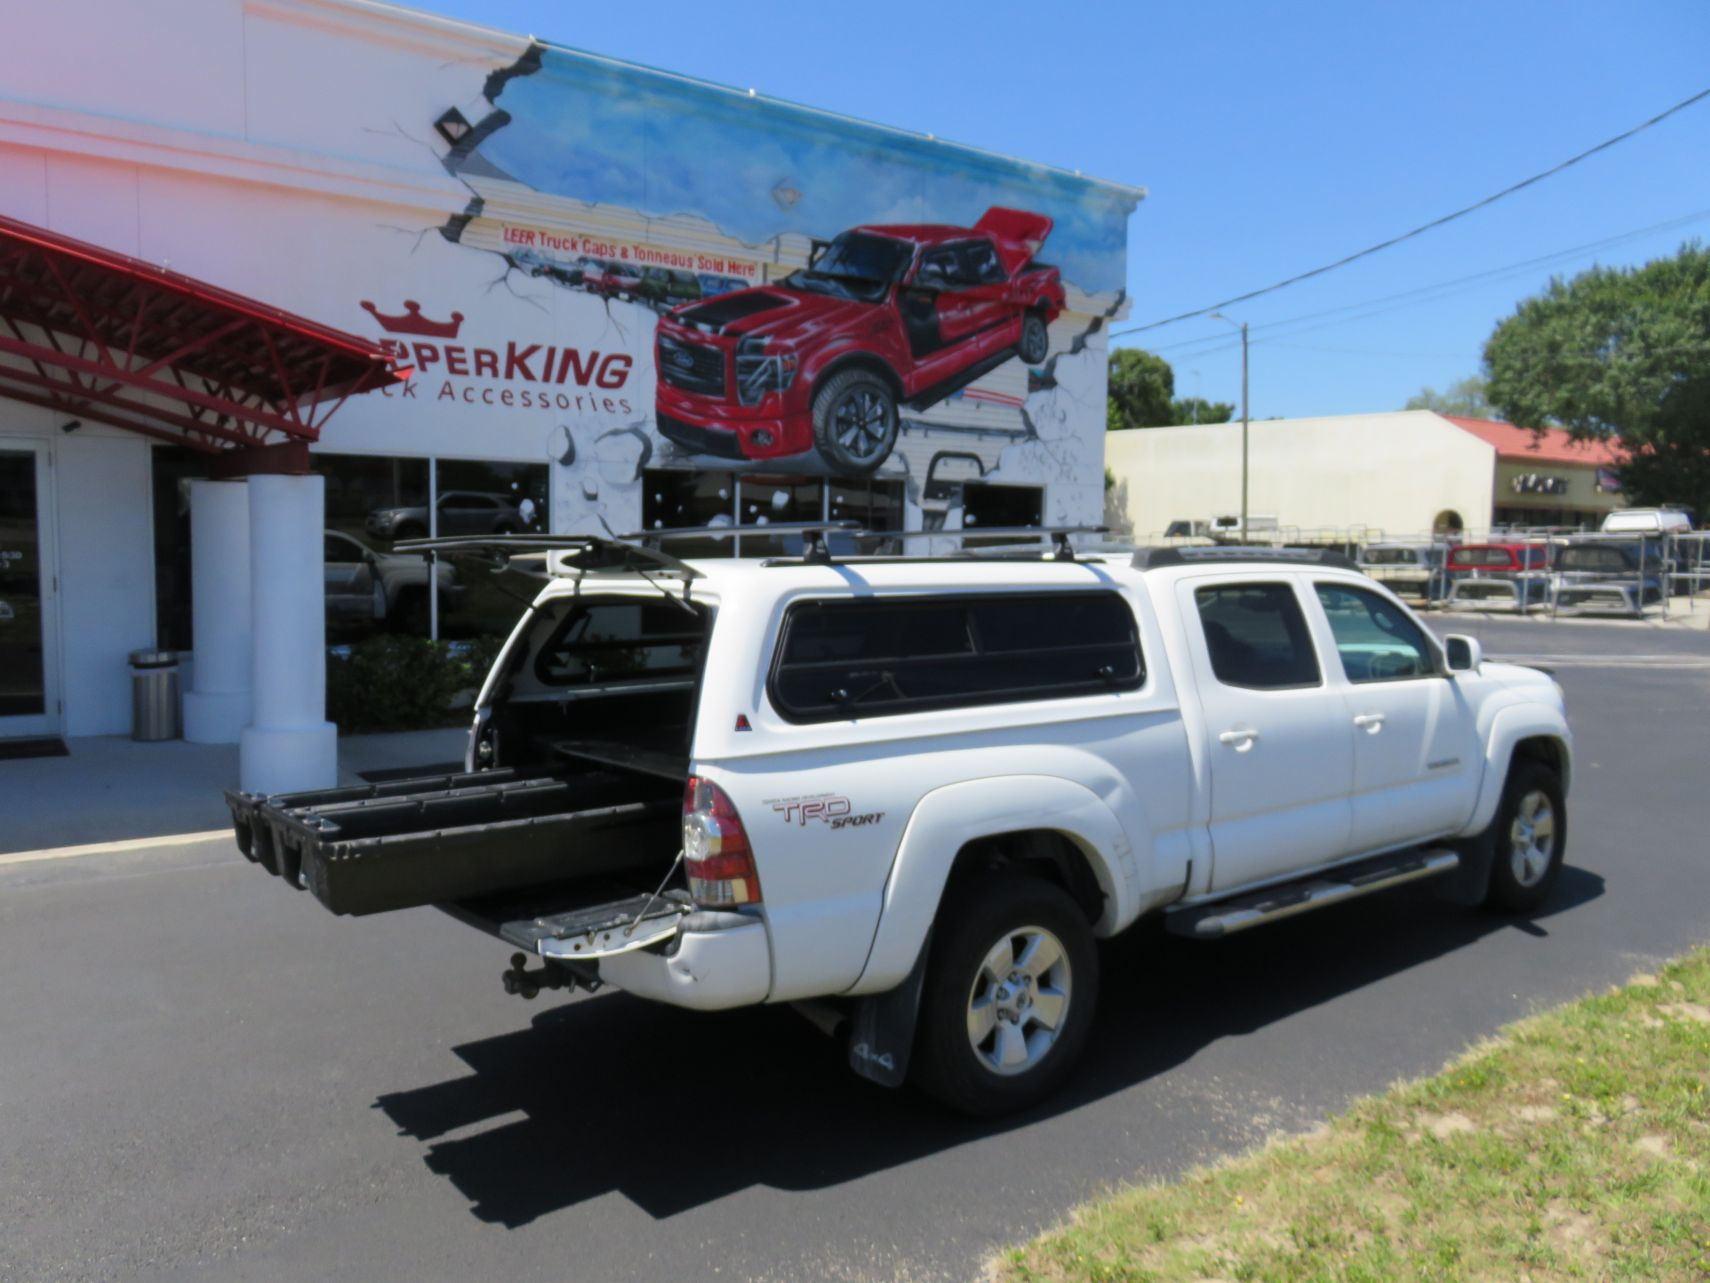 2014 Tacoma with LEER 100XR Decked, Nerf Bars, Roof Racks, Bug Guard, Hitch, Tint. TopperKING Brandon 813-689-2449 or Clearwater 727-530-9066